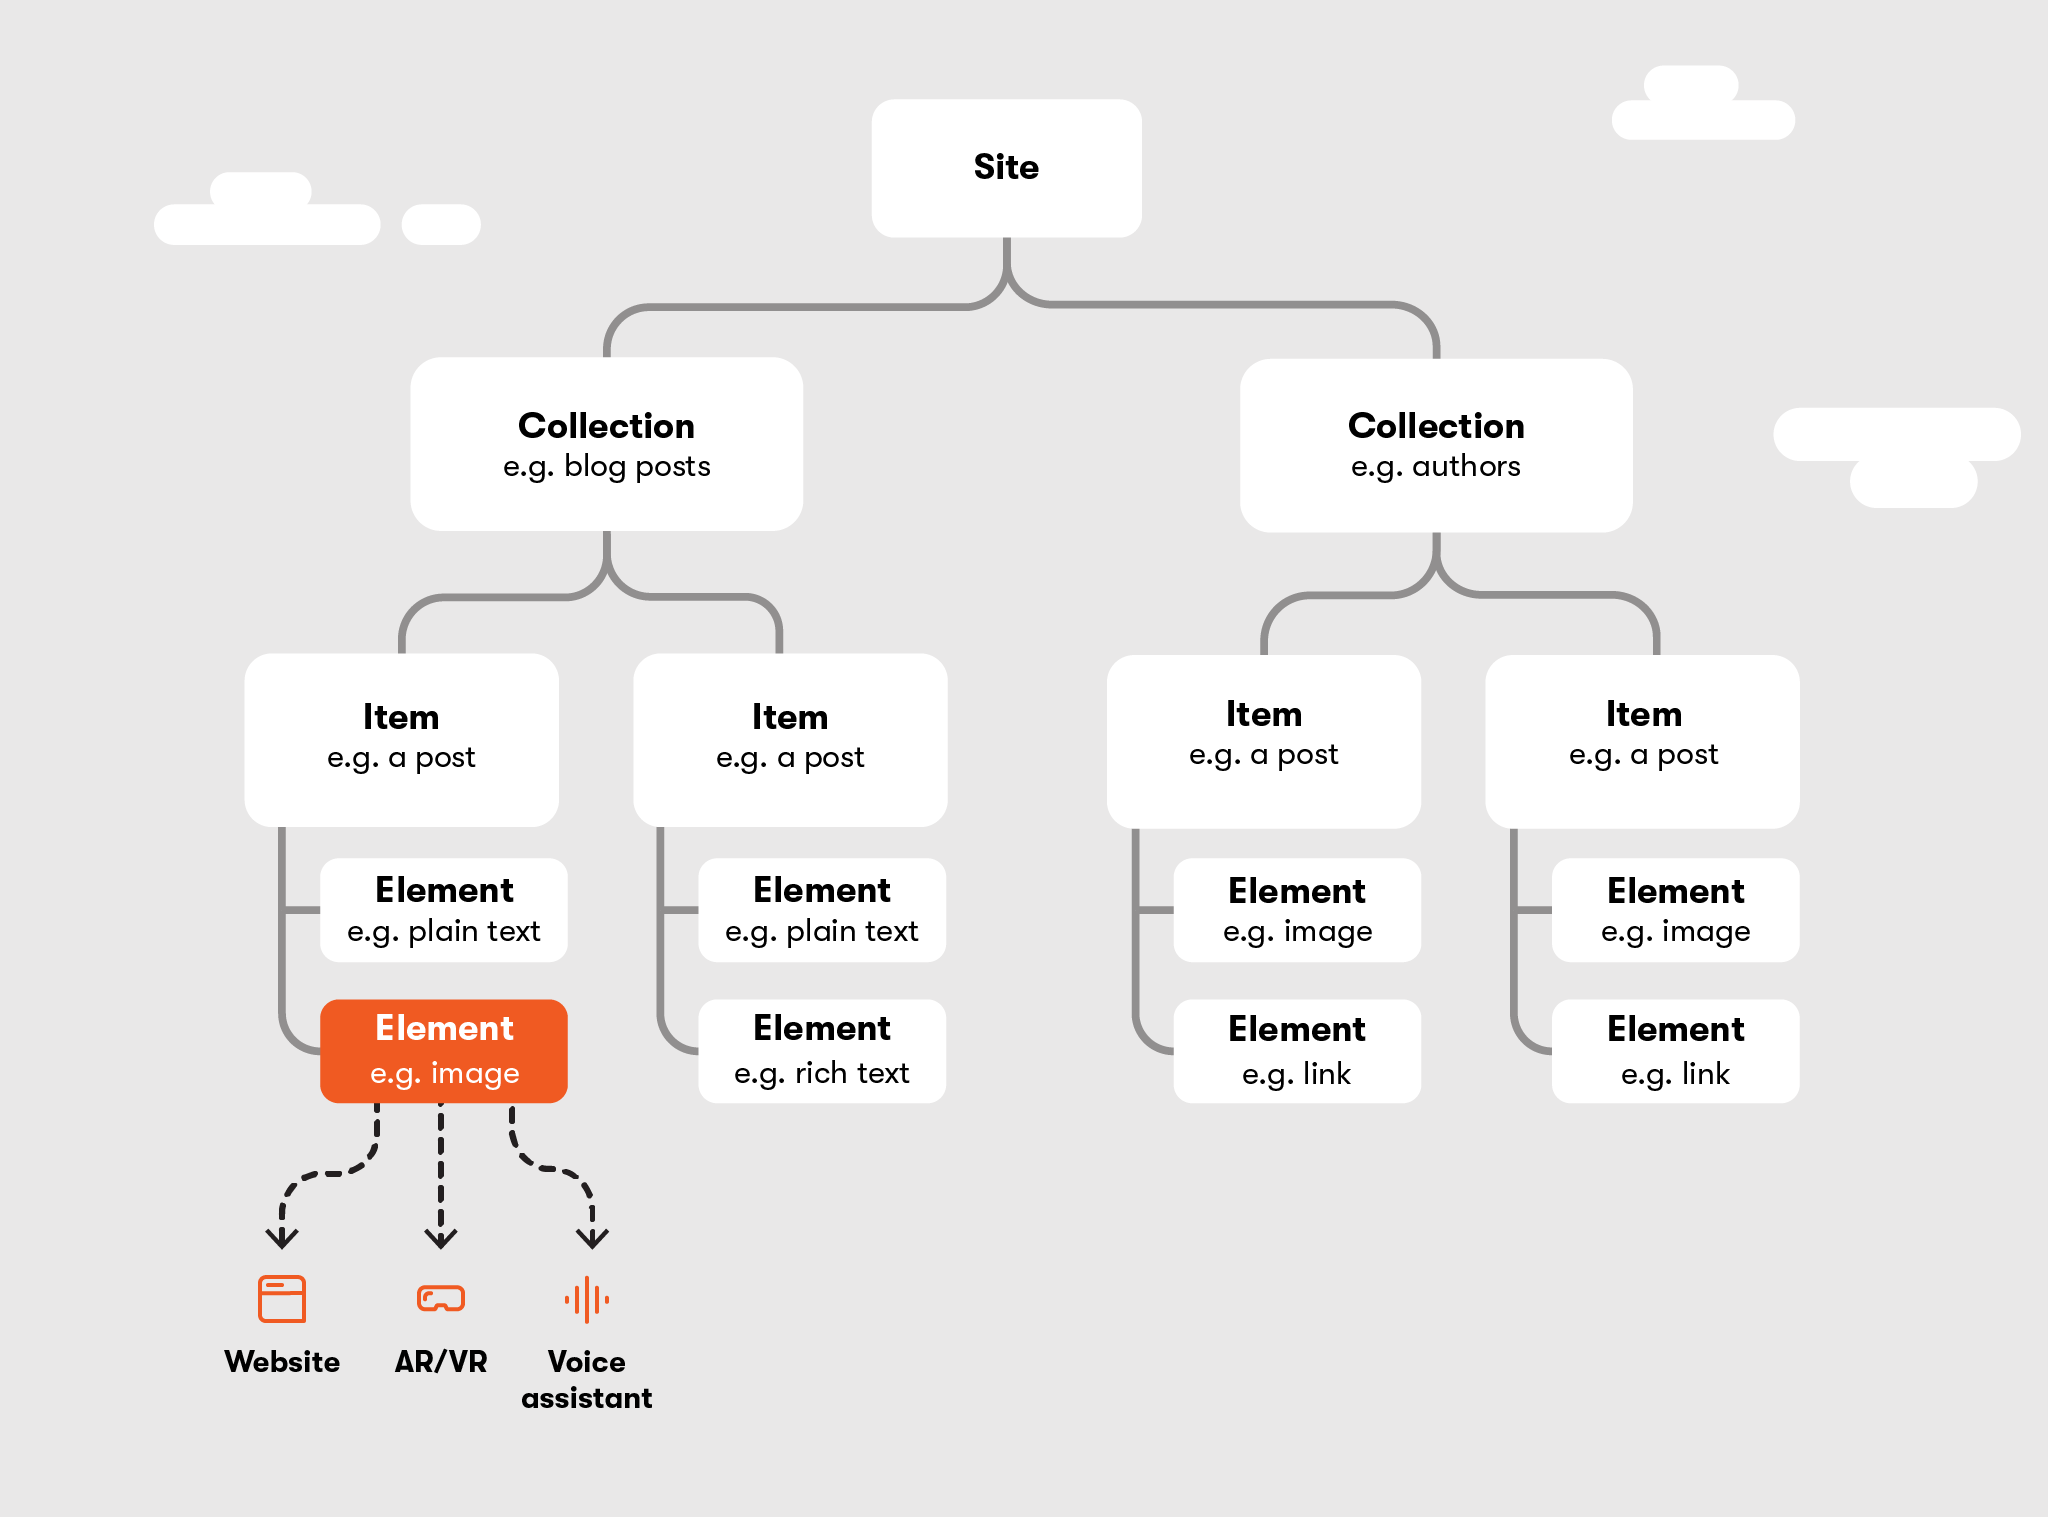 API chunkiness and content model chunkiness should be the same